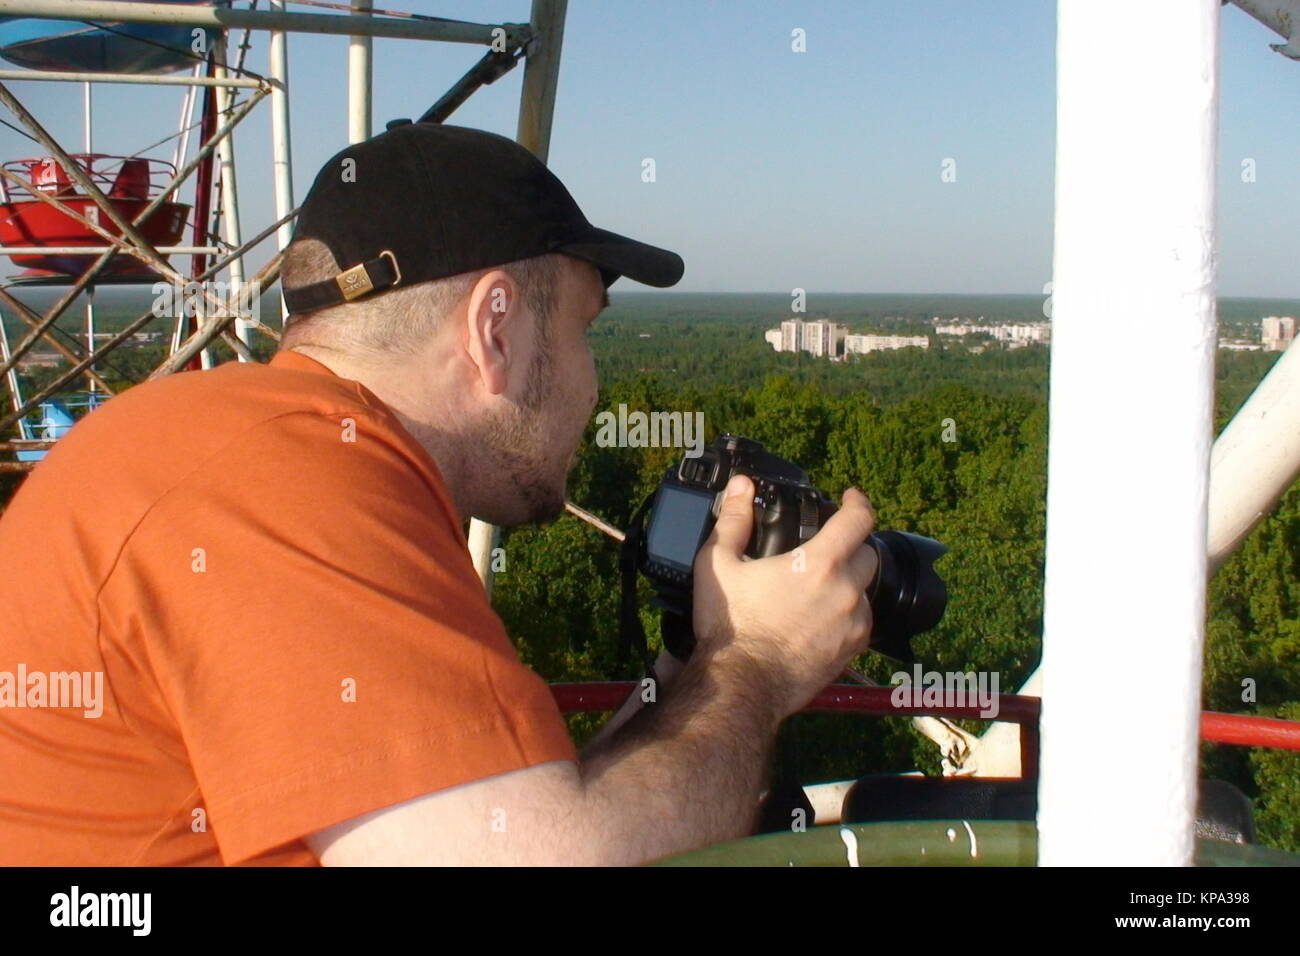 A man photographs the landscape from the height of the Ferris wheel. - Stock Image